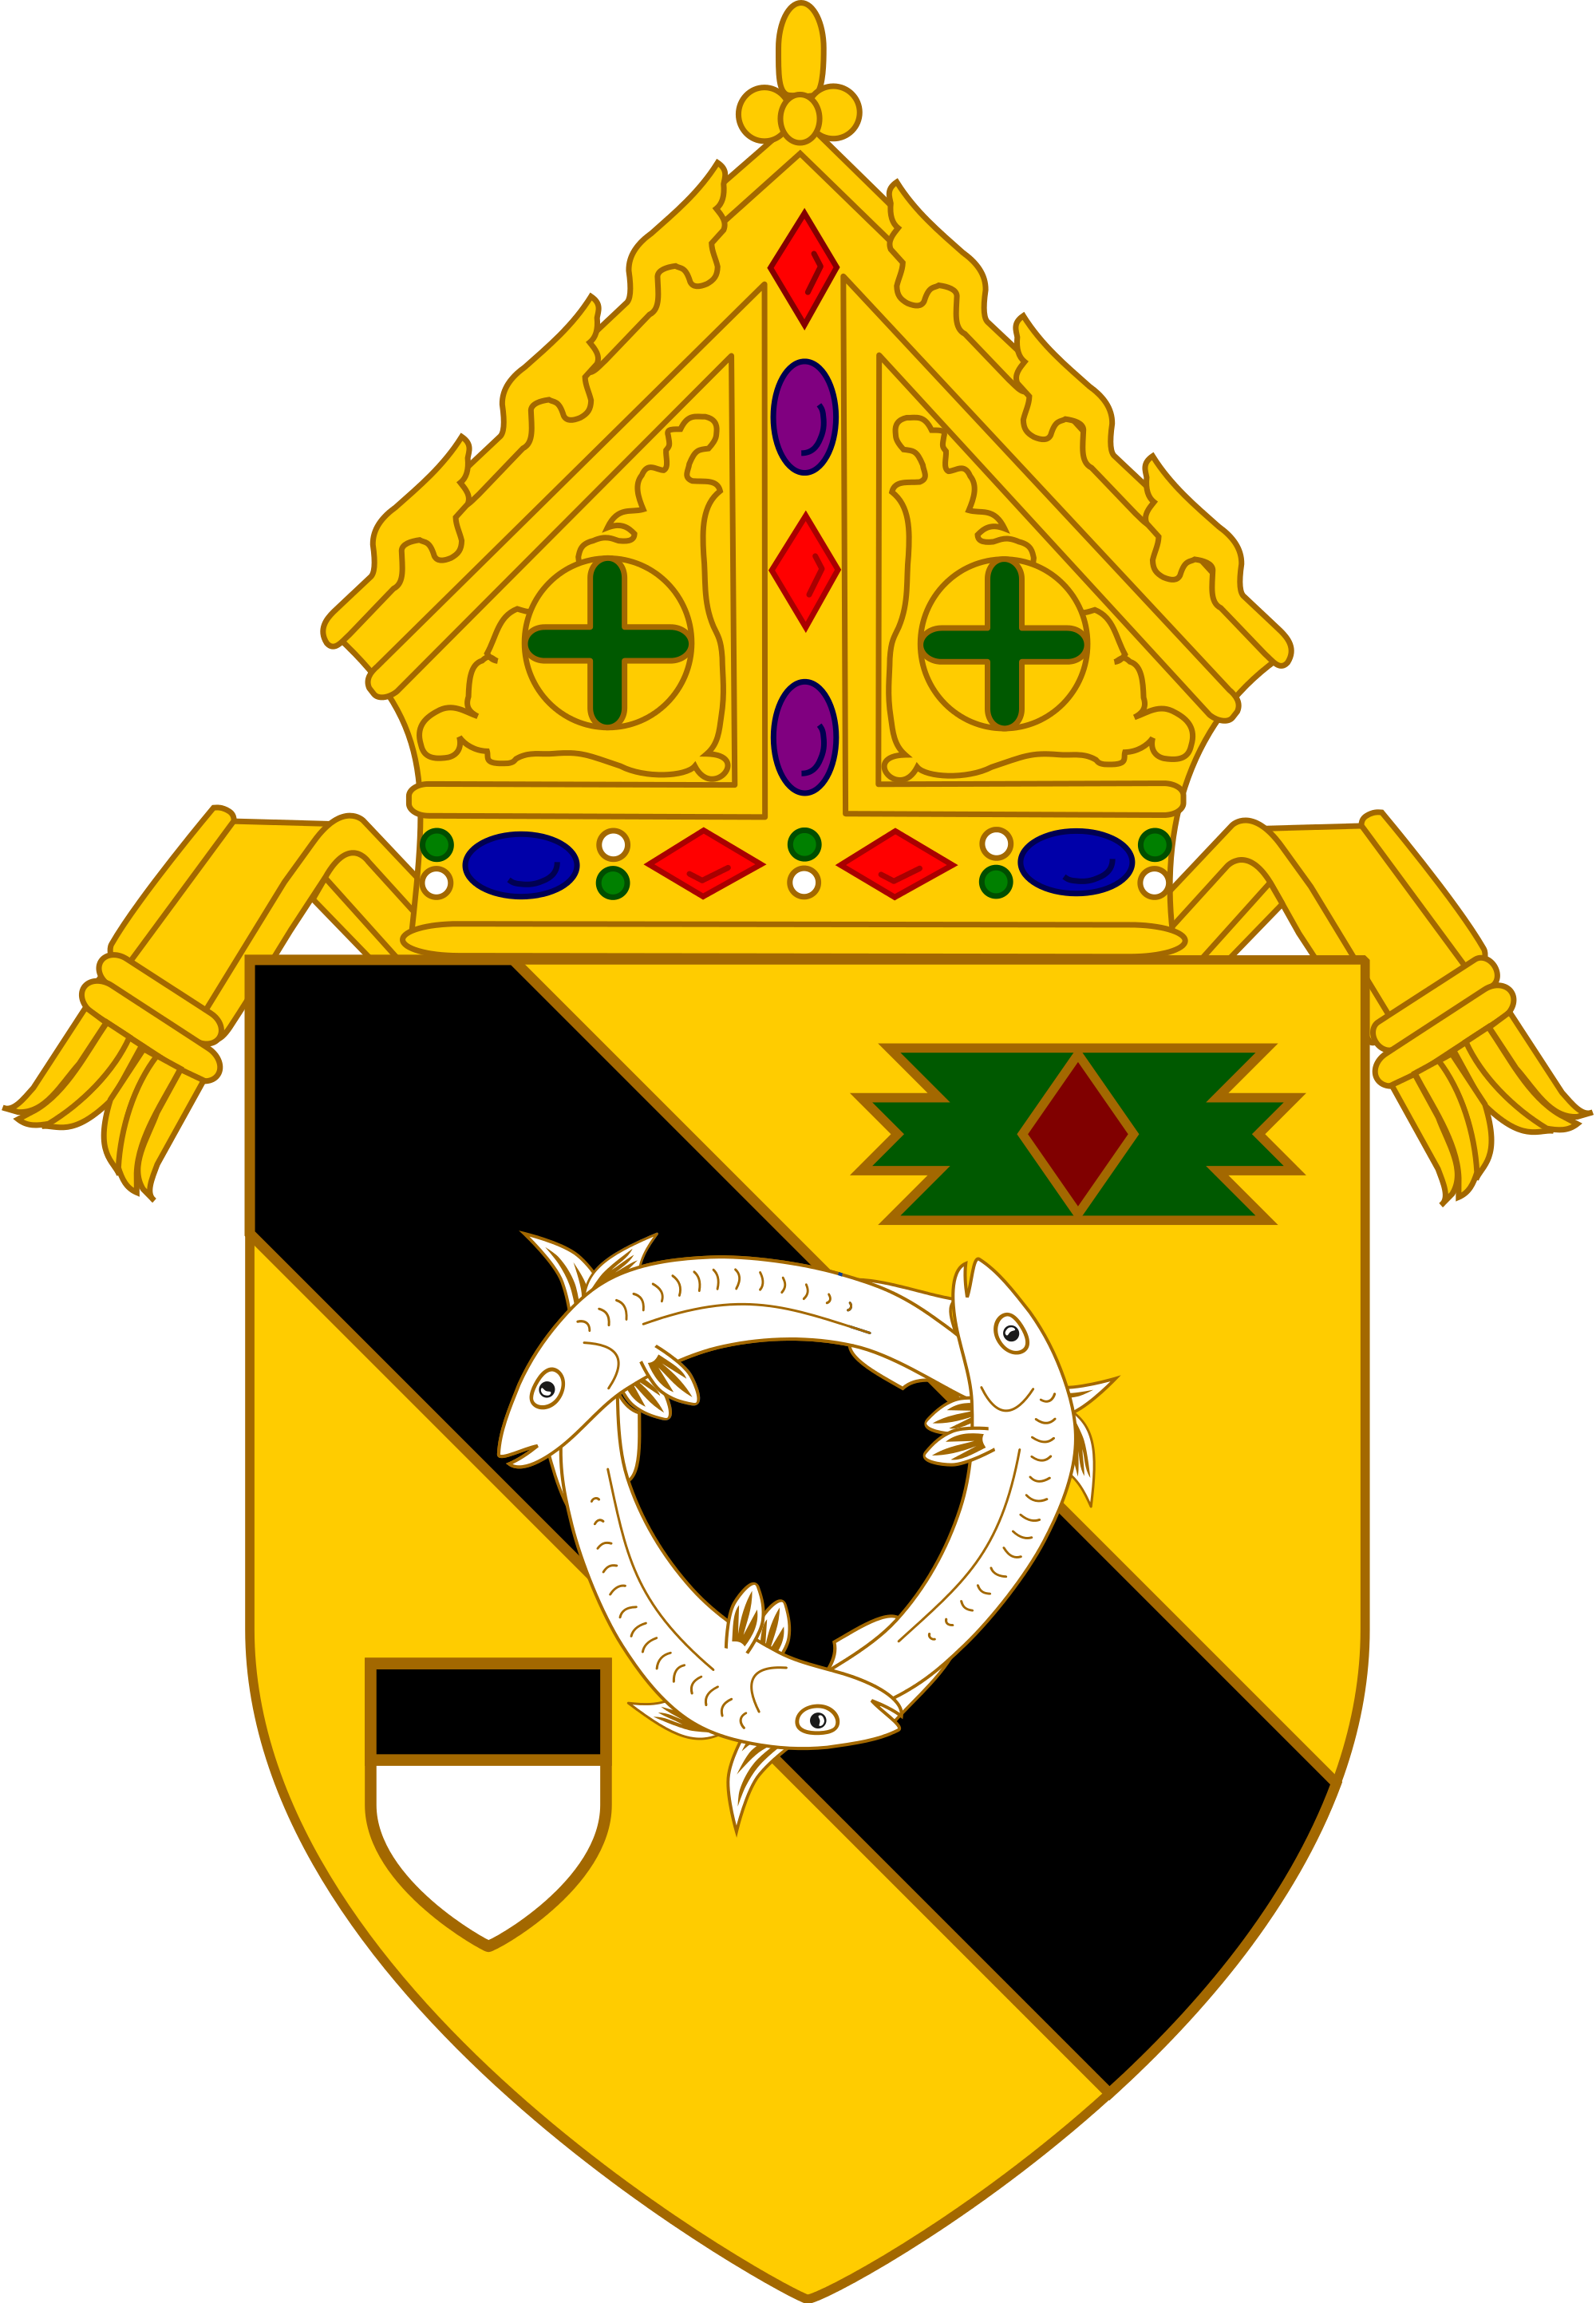 File:Coat of Arms of the Roman Catholic Diocese of New Ulm.svg.